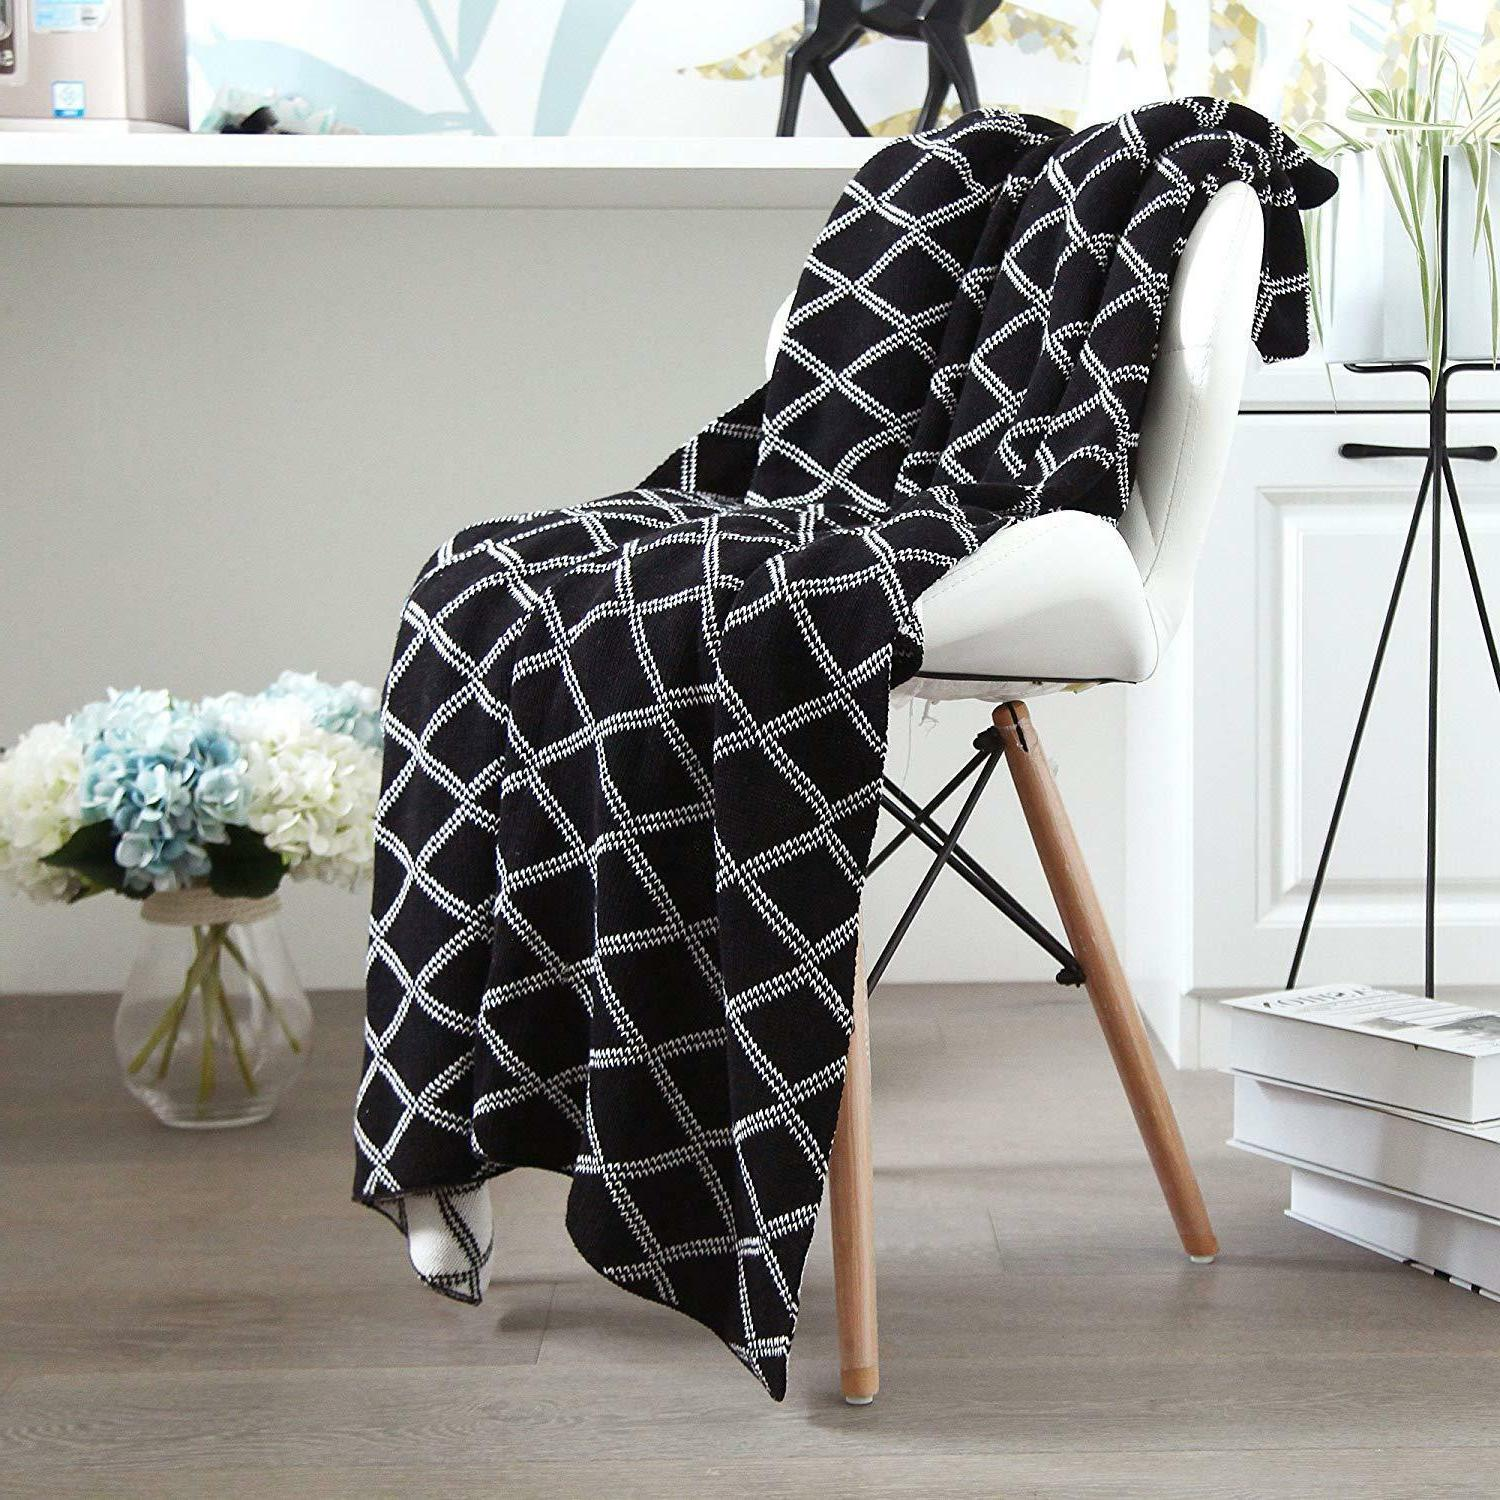 100% Organic Cable Knit Throw Blanket for Sofa